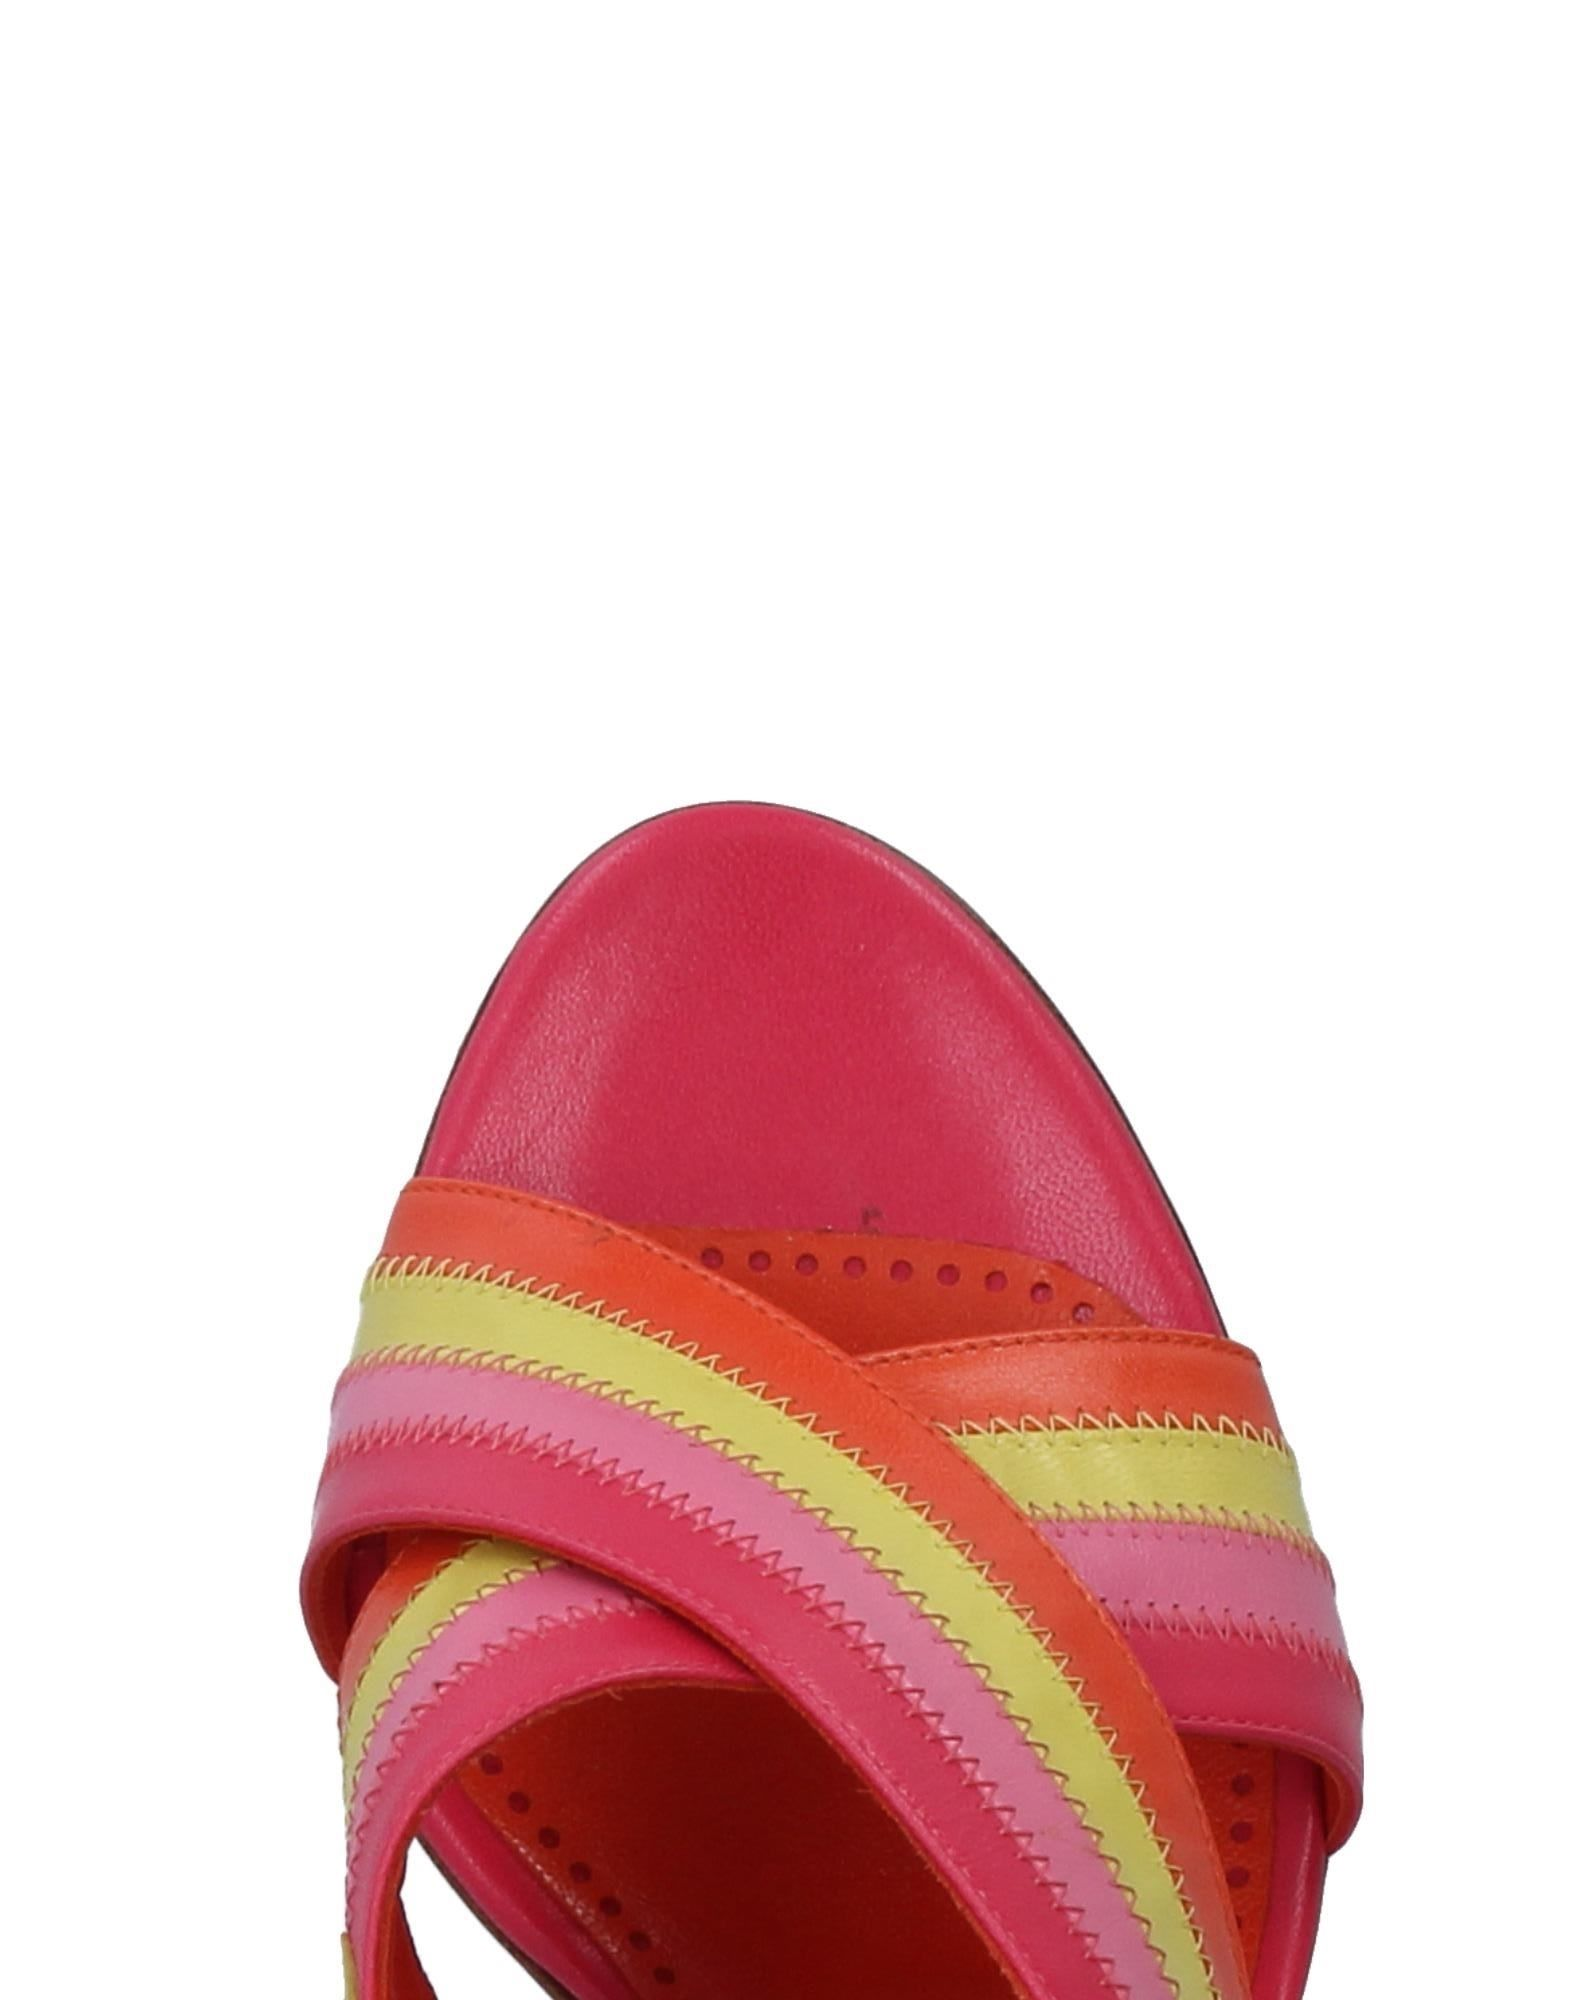 Sandales Moschino Cheap And Chic Femme - Sandales Moschino Cheap And Chic sur